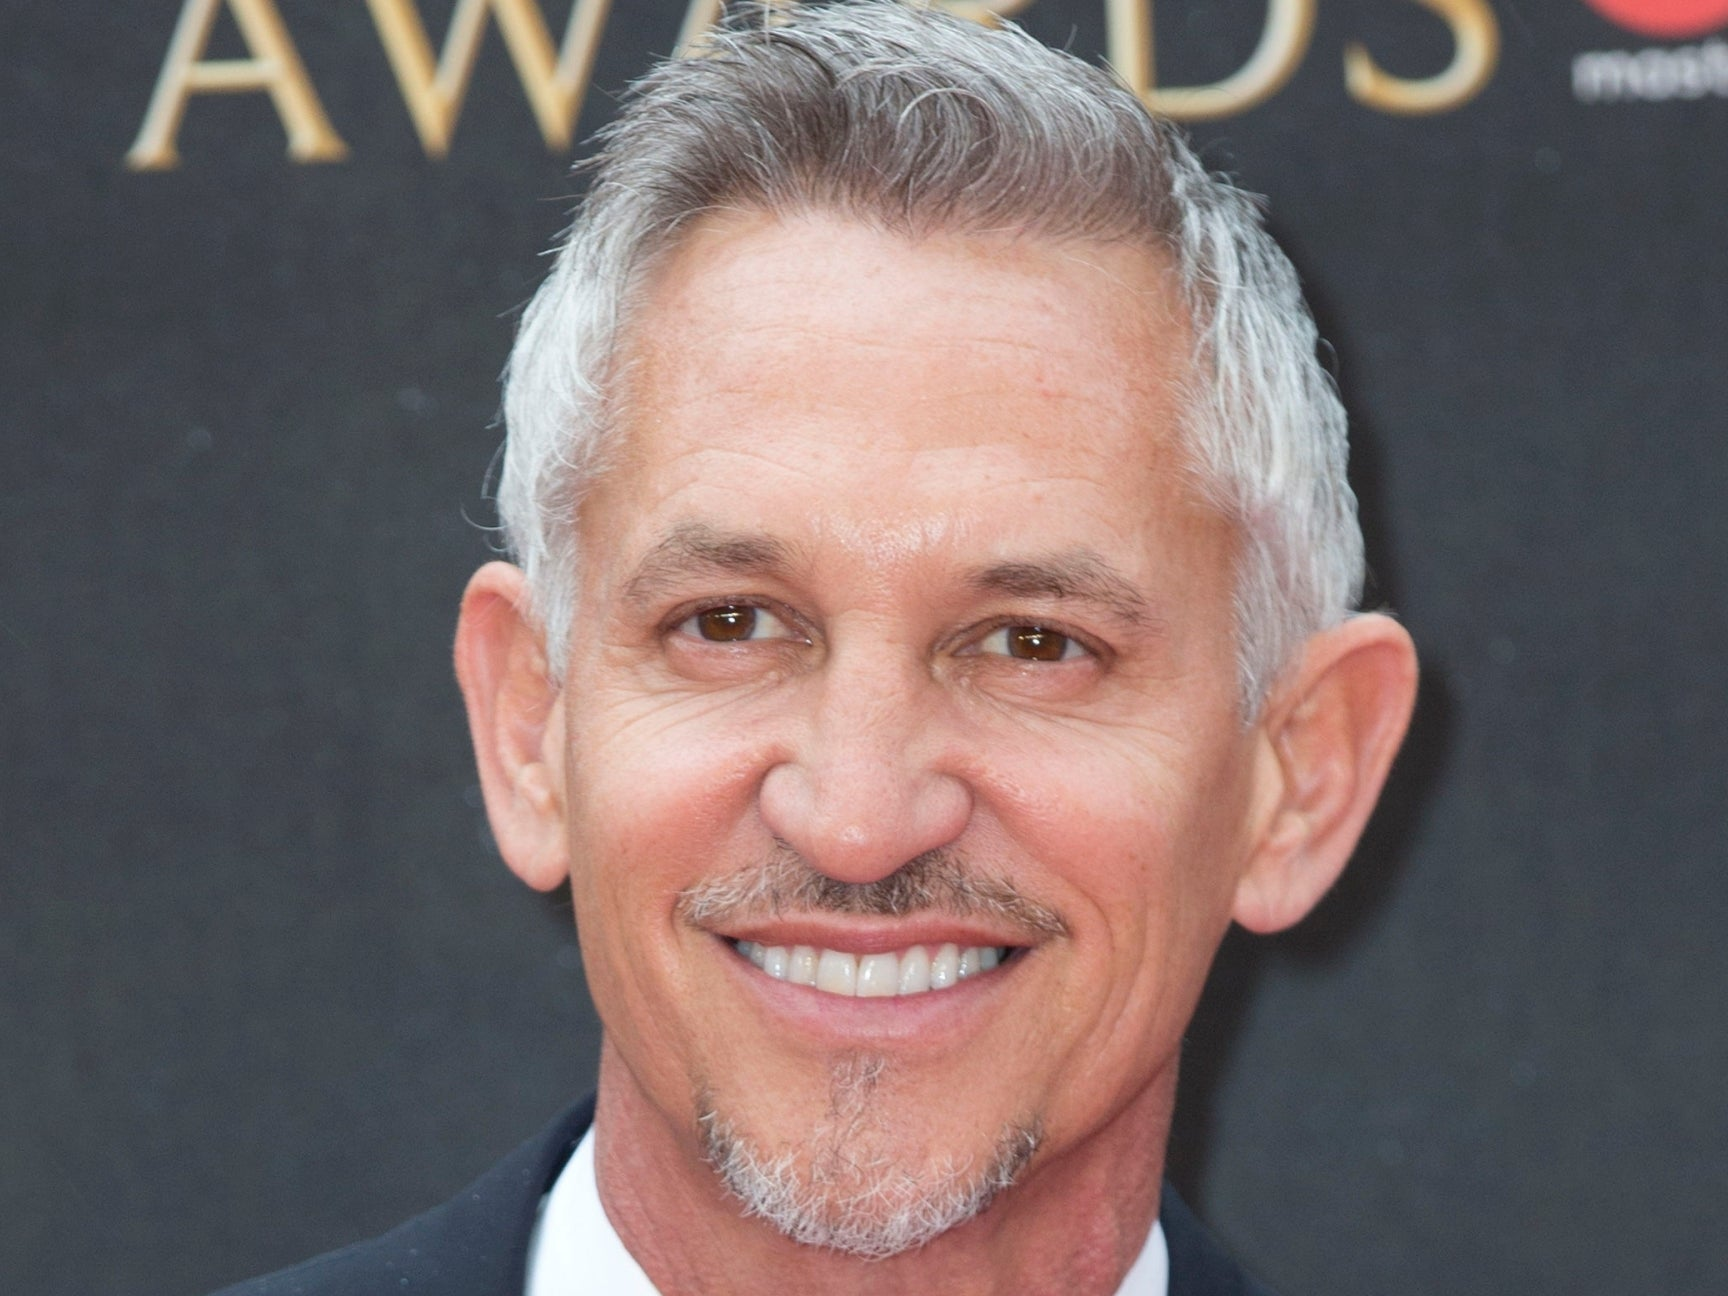 Gary Lineker volunteers to cut down £1.75m BBC salary: 'It's the right thing to do'